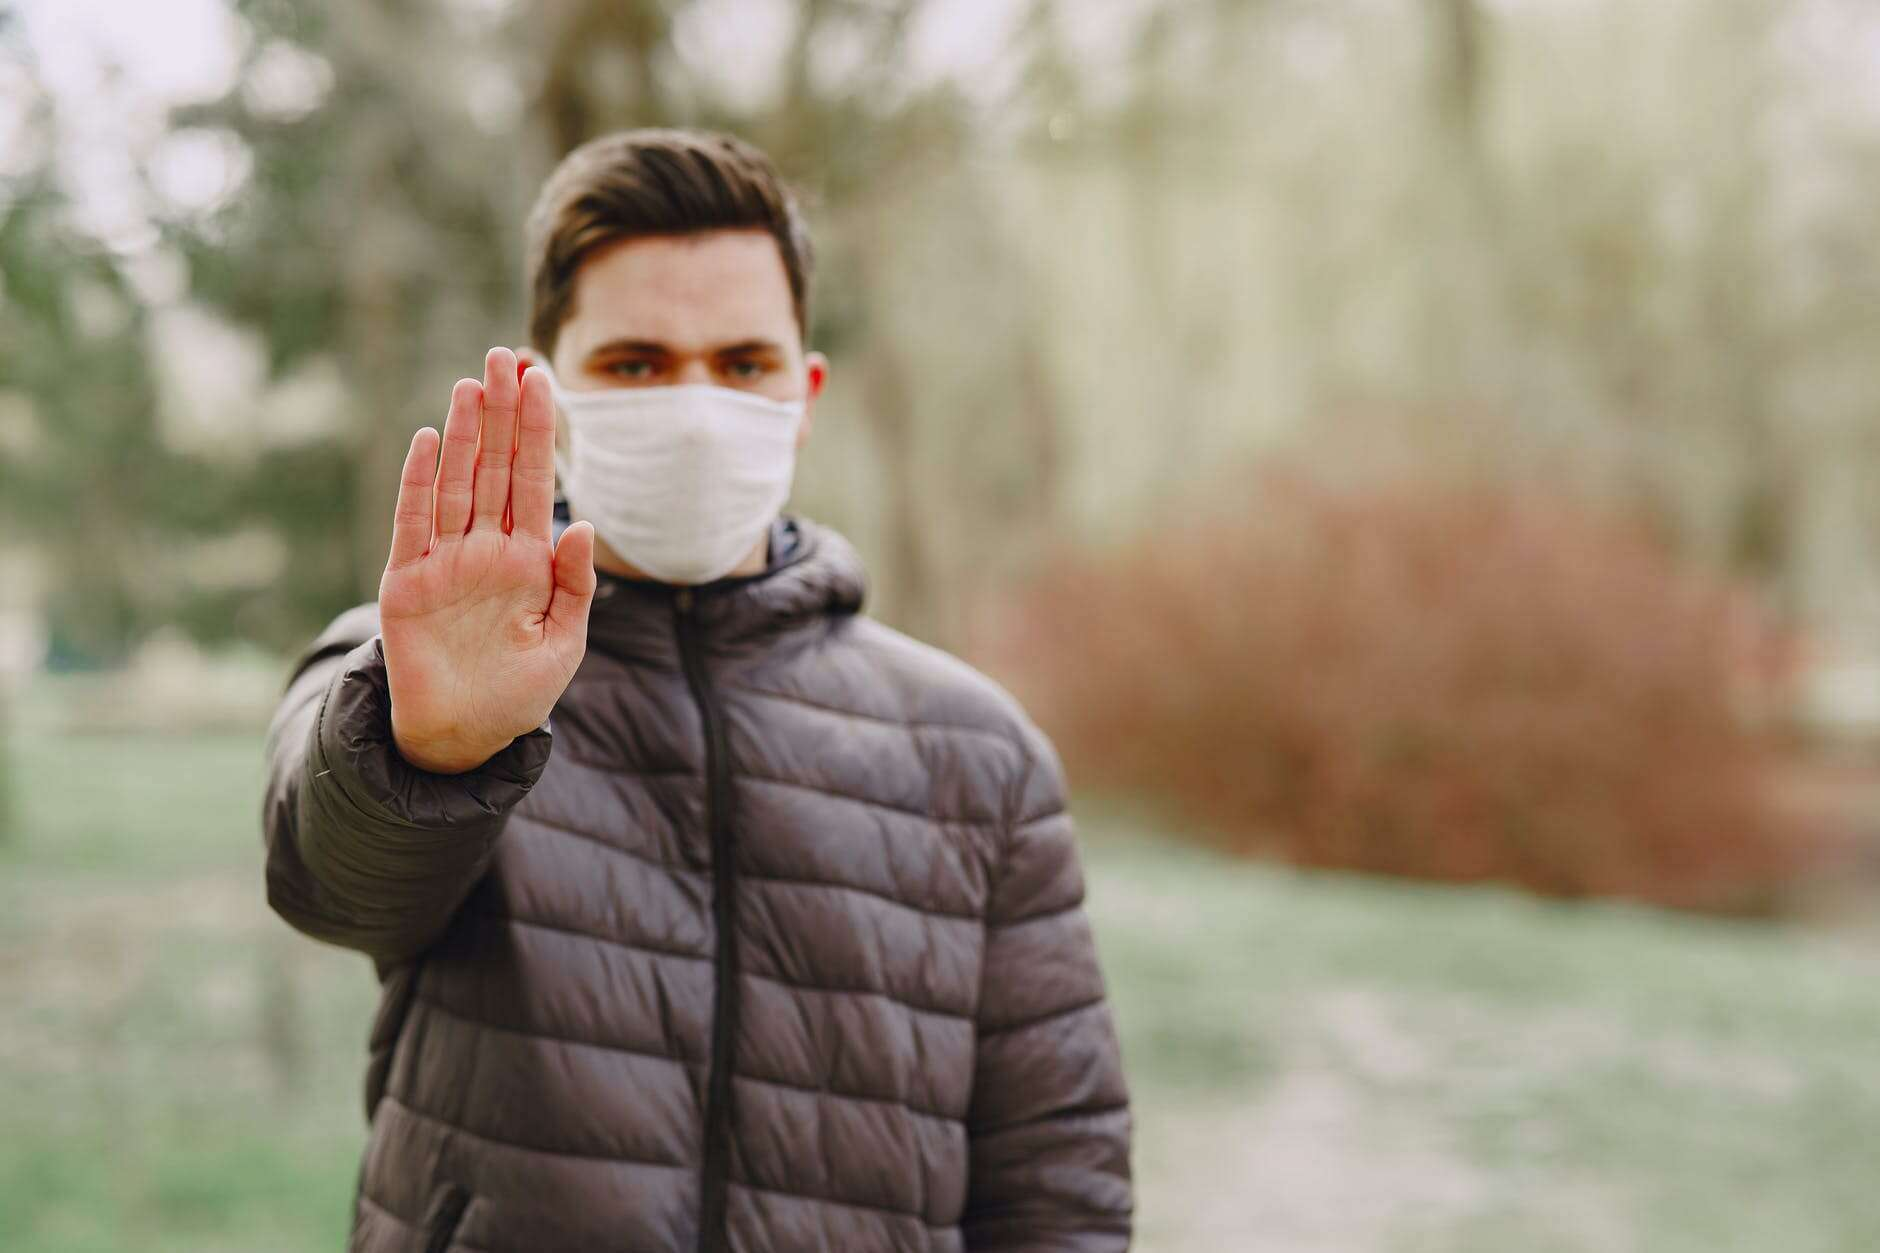 Man With Mask Holding Out Hand